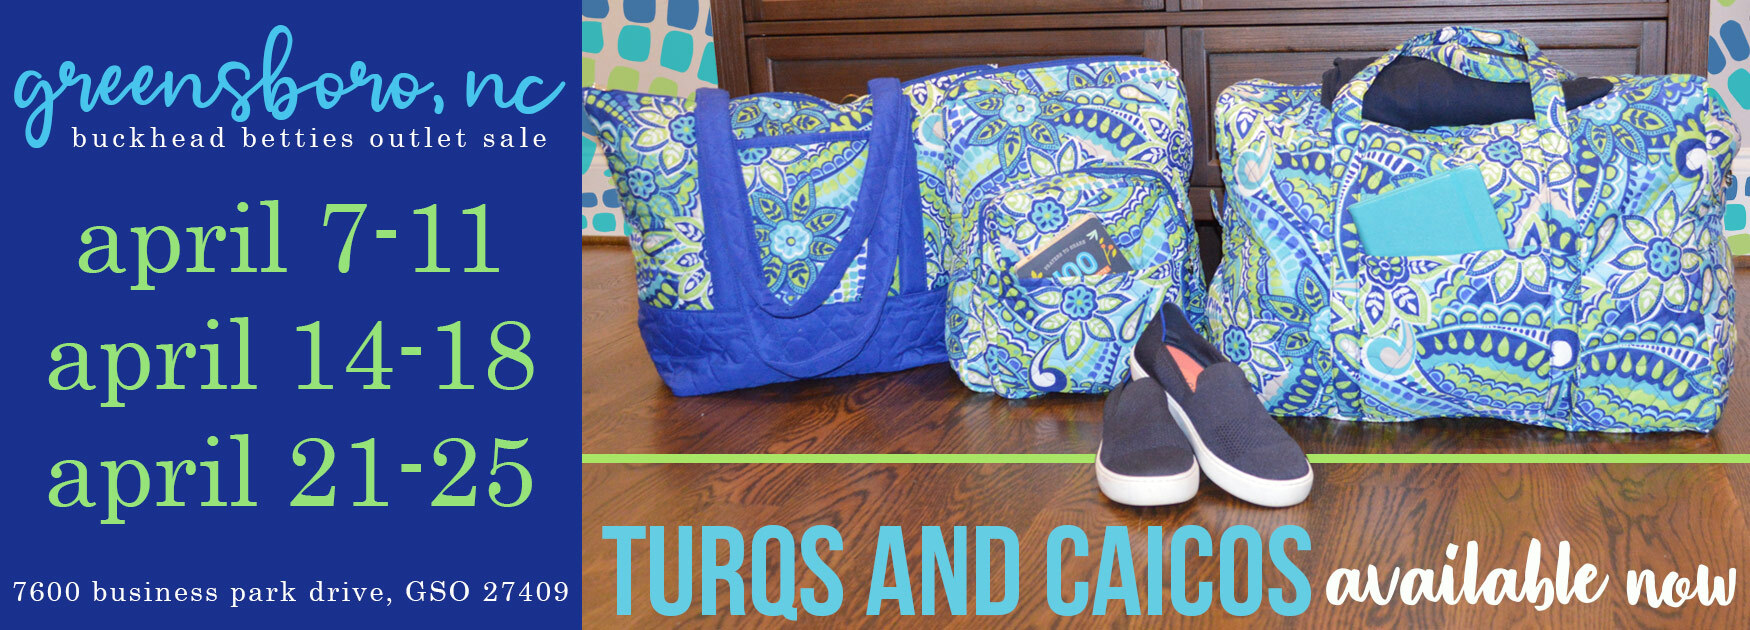 turqs and caicos available now!